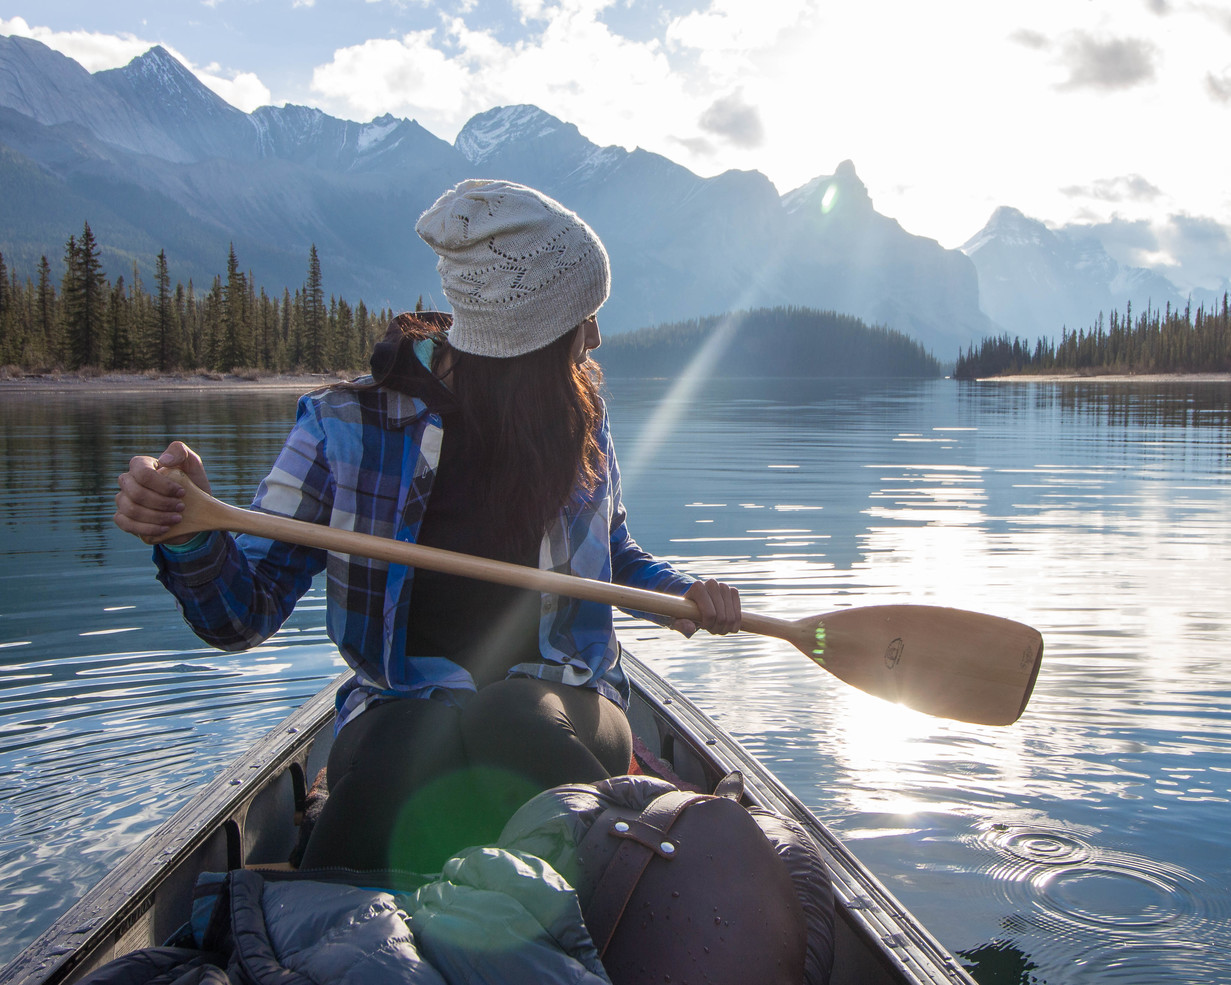 A woman is dressed for a day on the water in a canoe in Jasper